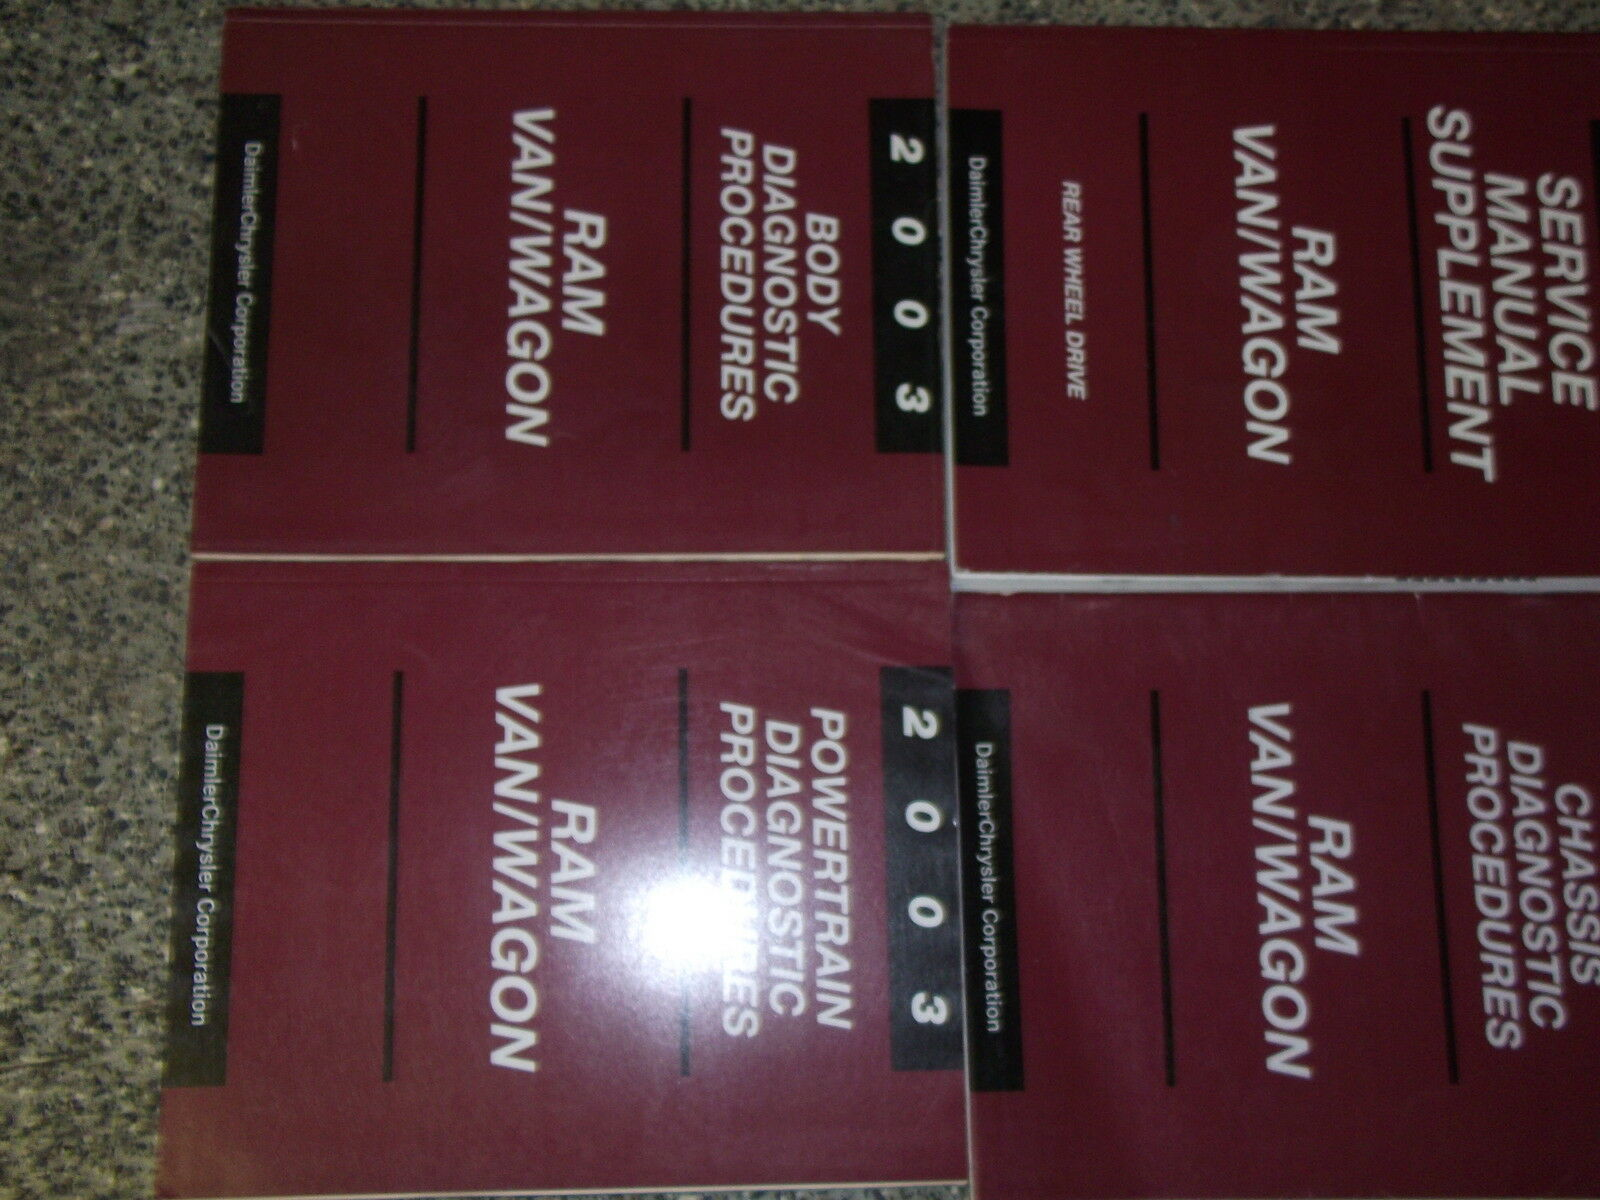 2003 DODGE RAM VAN WAGON Service Repair Shop Manual Set FACTORY OEM 03 BOOK  1 of 1 See More